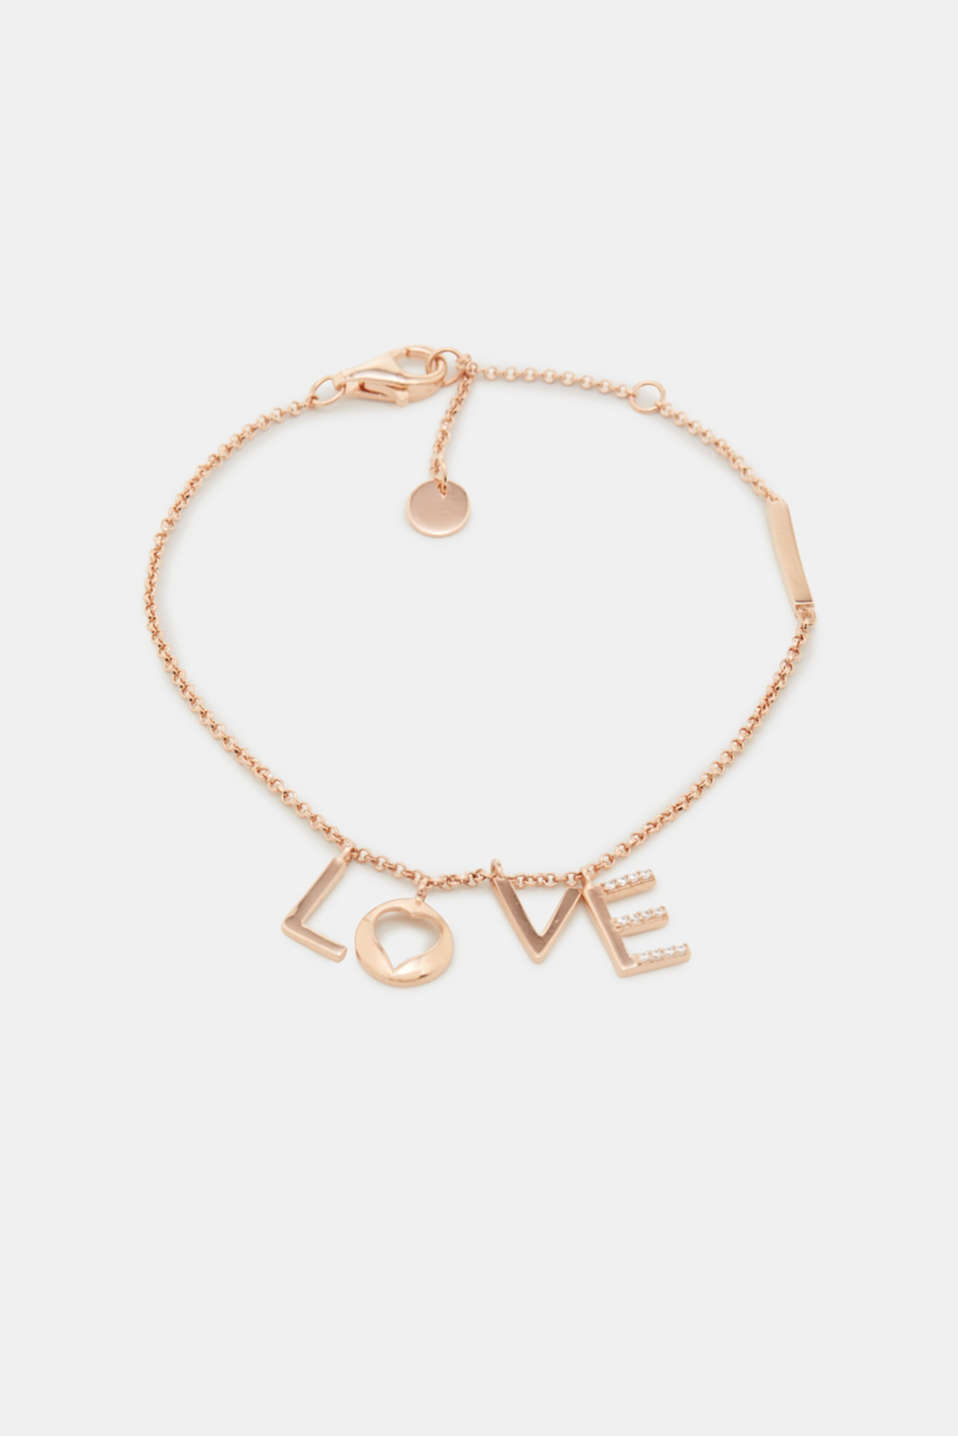 L.O.V.E. – This filigree bracelet is defined by its letters set with zirconia stones.